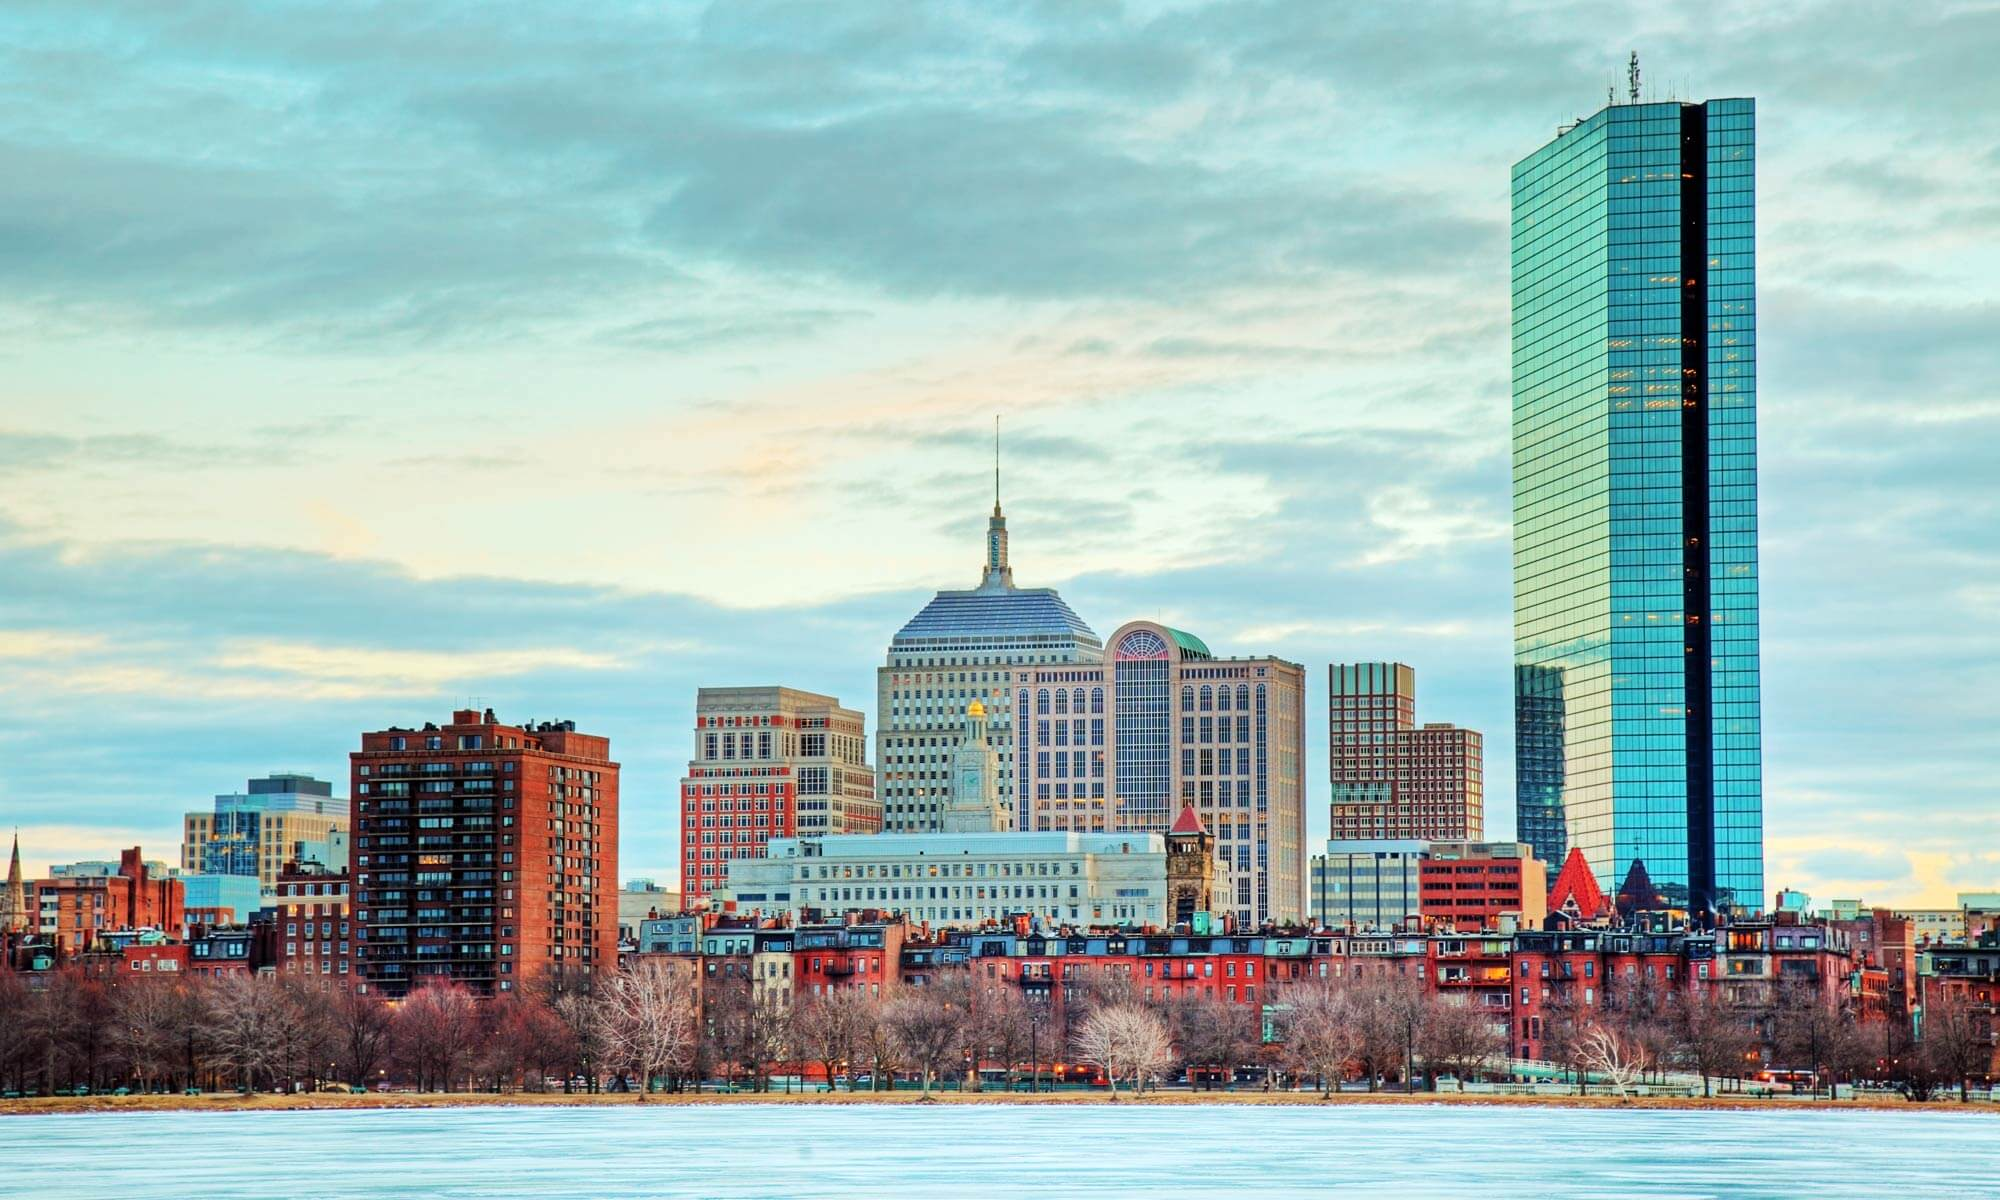 View of the Boston, MA skyline from the Charles River